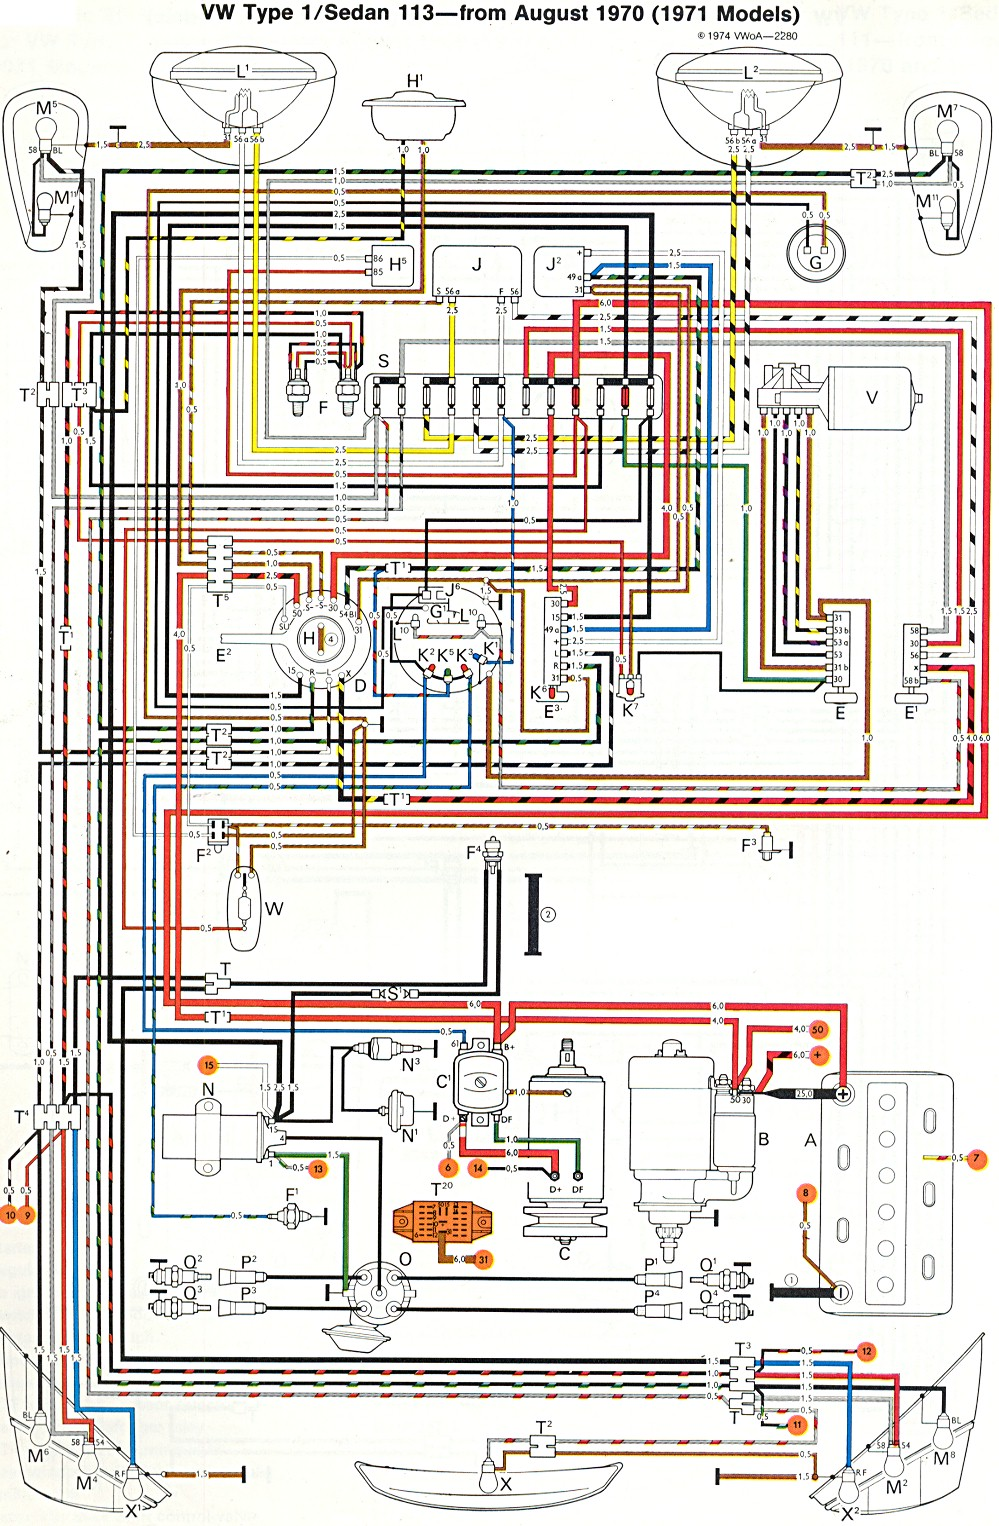 bosch internal regulator alternator wiring diagram ixl tastic silhouette vw alt beetle generator image 1972 on